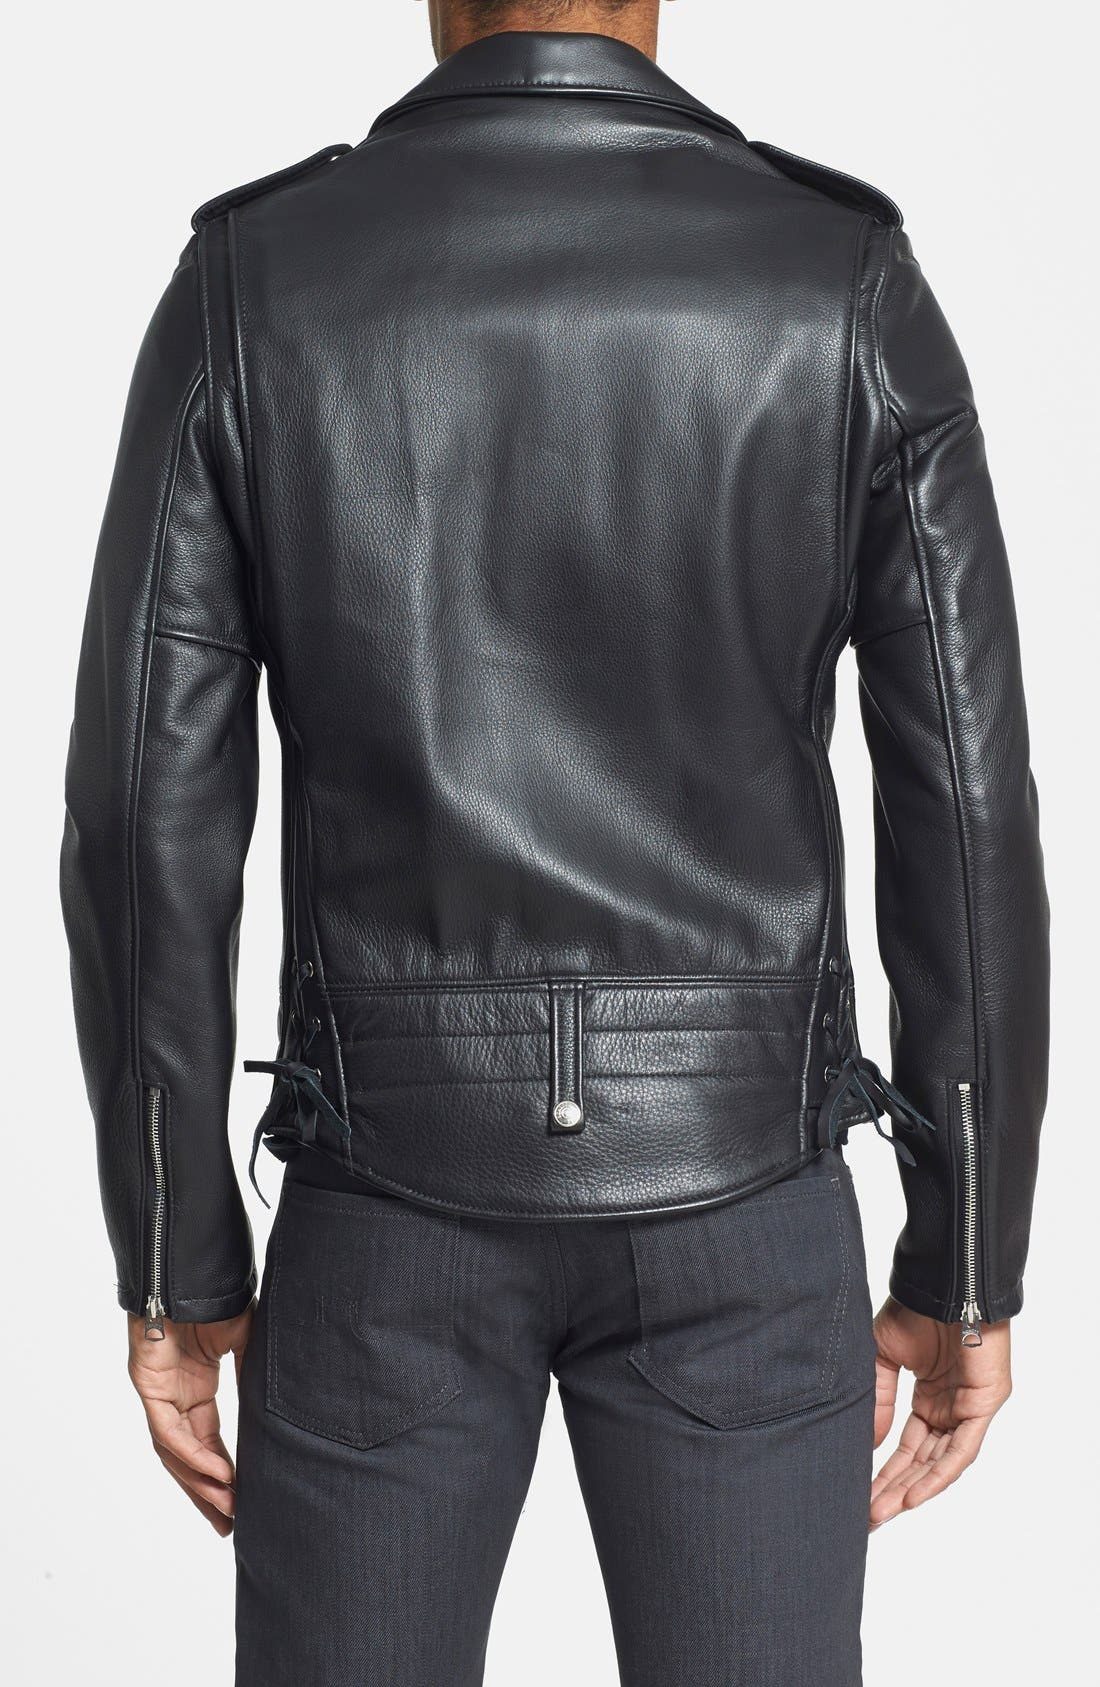 'Chips' Slim Fit Moto Leather Jacket,                             Alternate thumbnail 2, color,                             Black